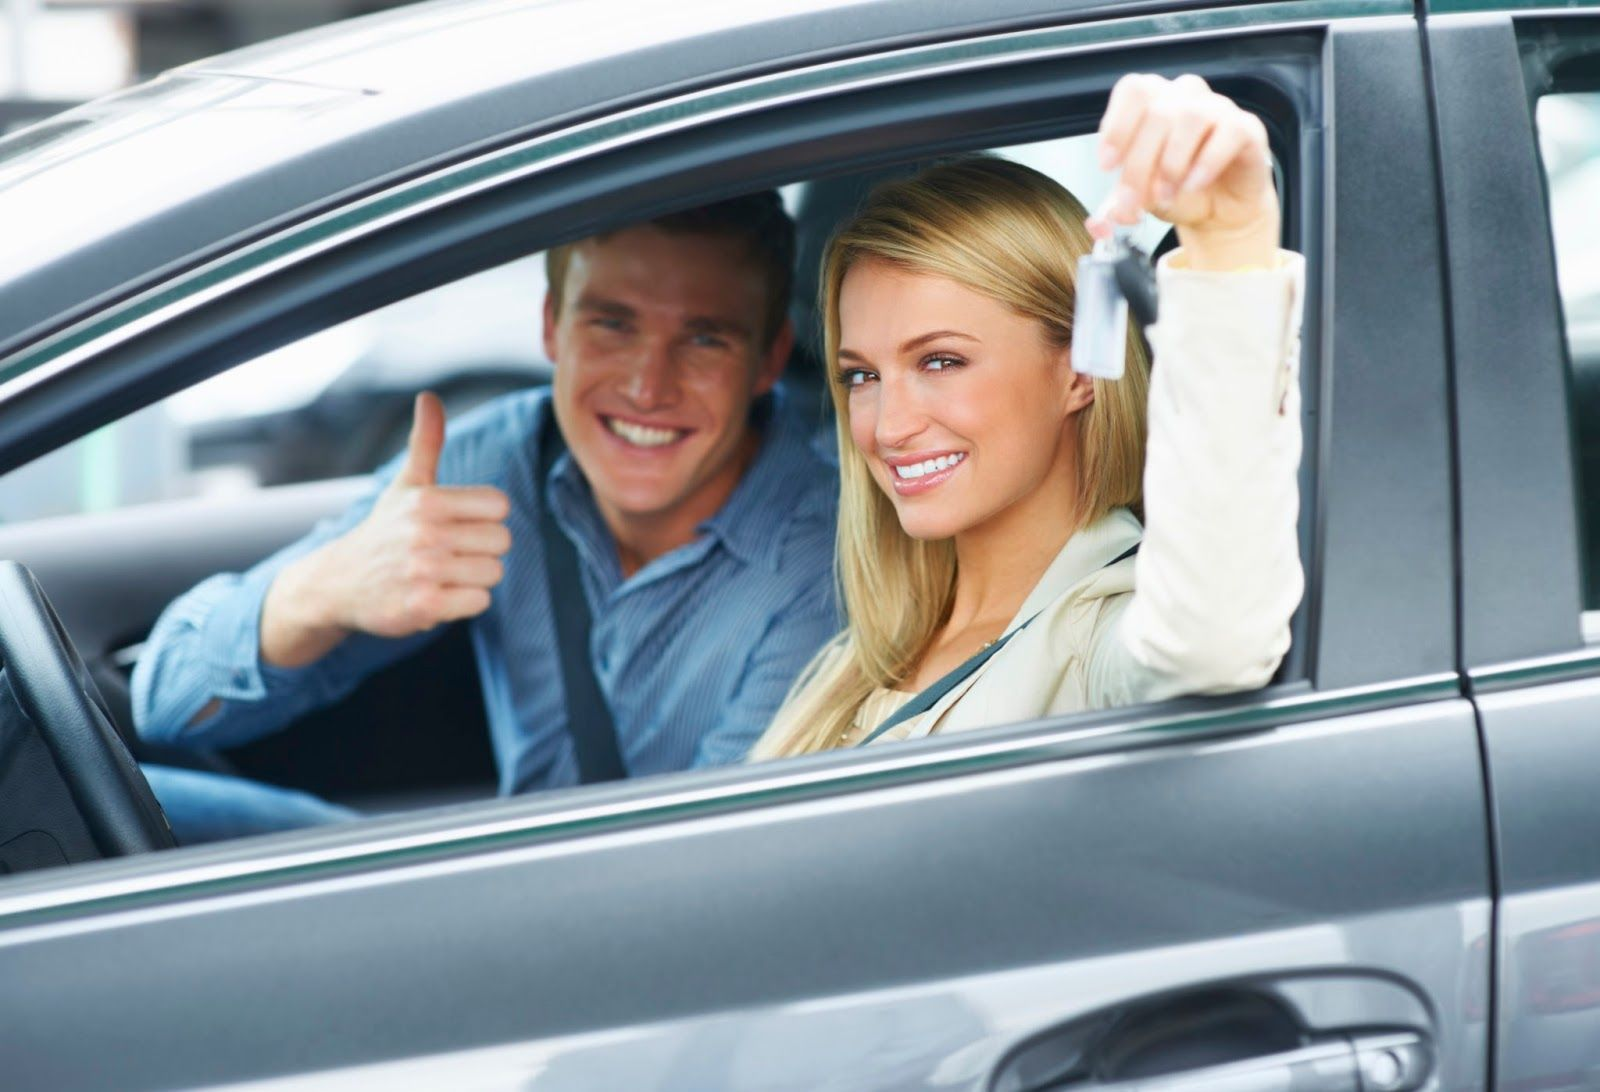 Insurance Carinsurance How Much Does It Cost To Add A Driver To